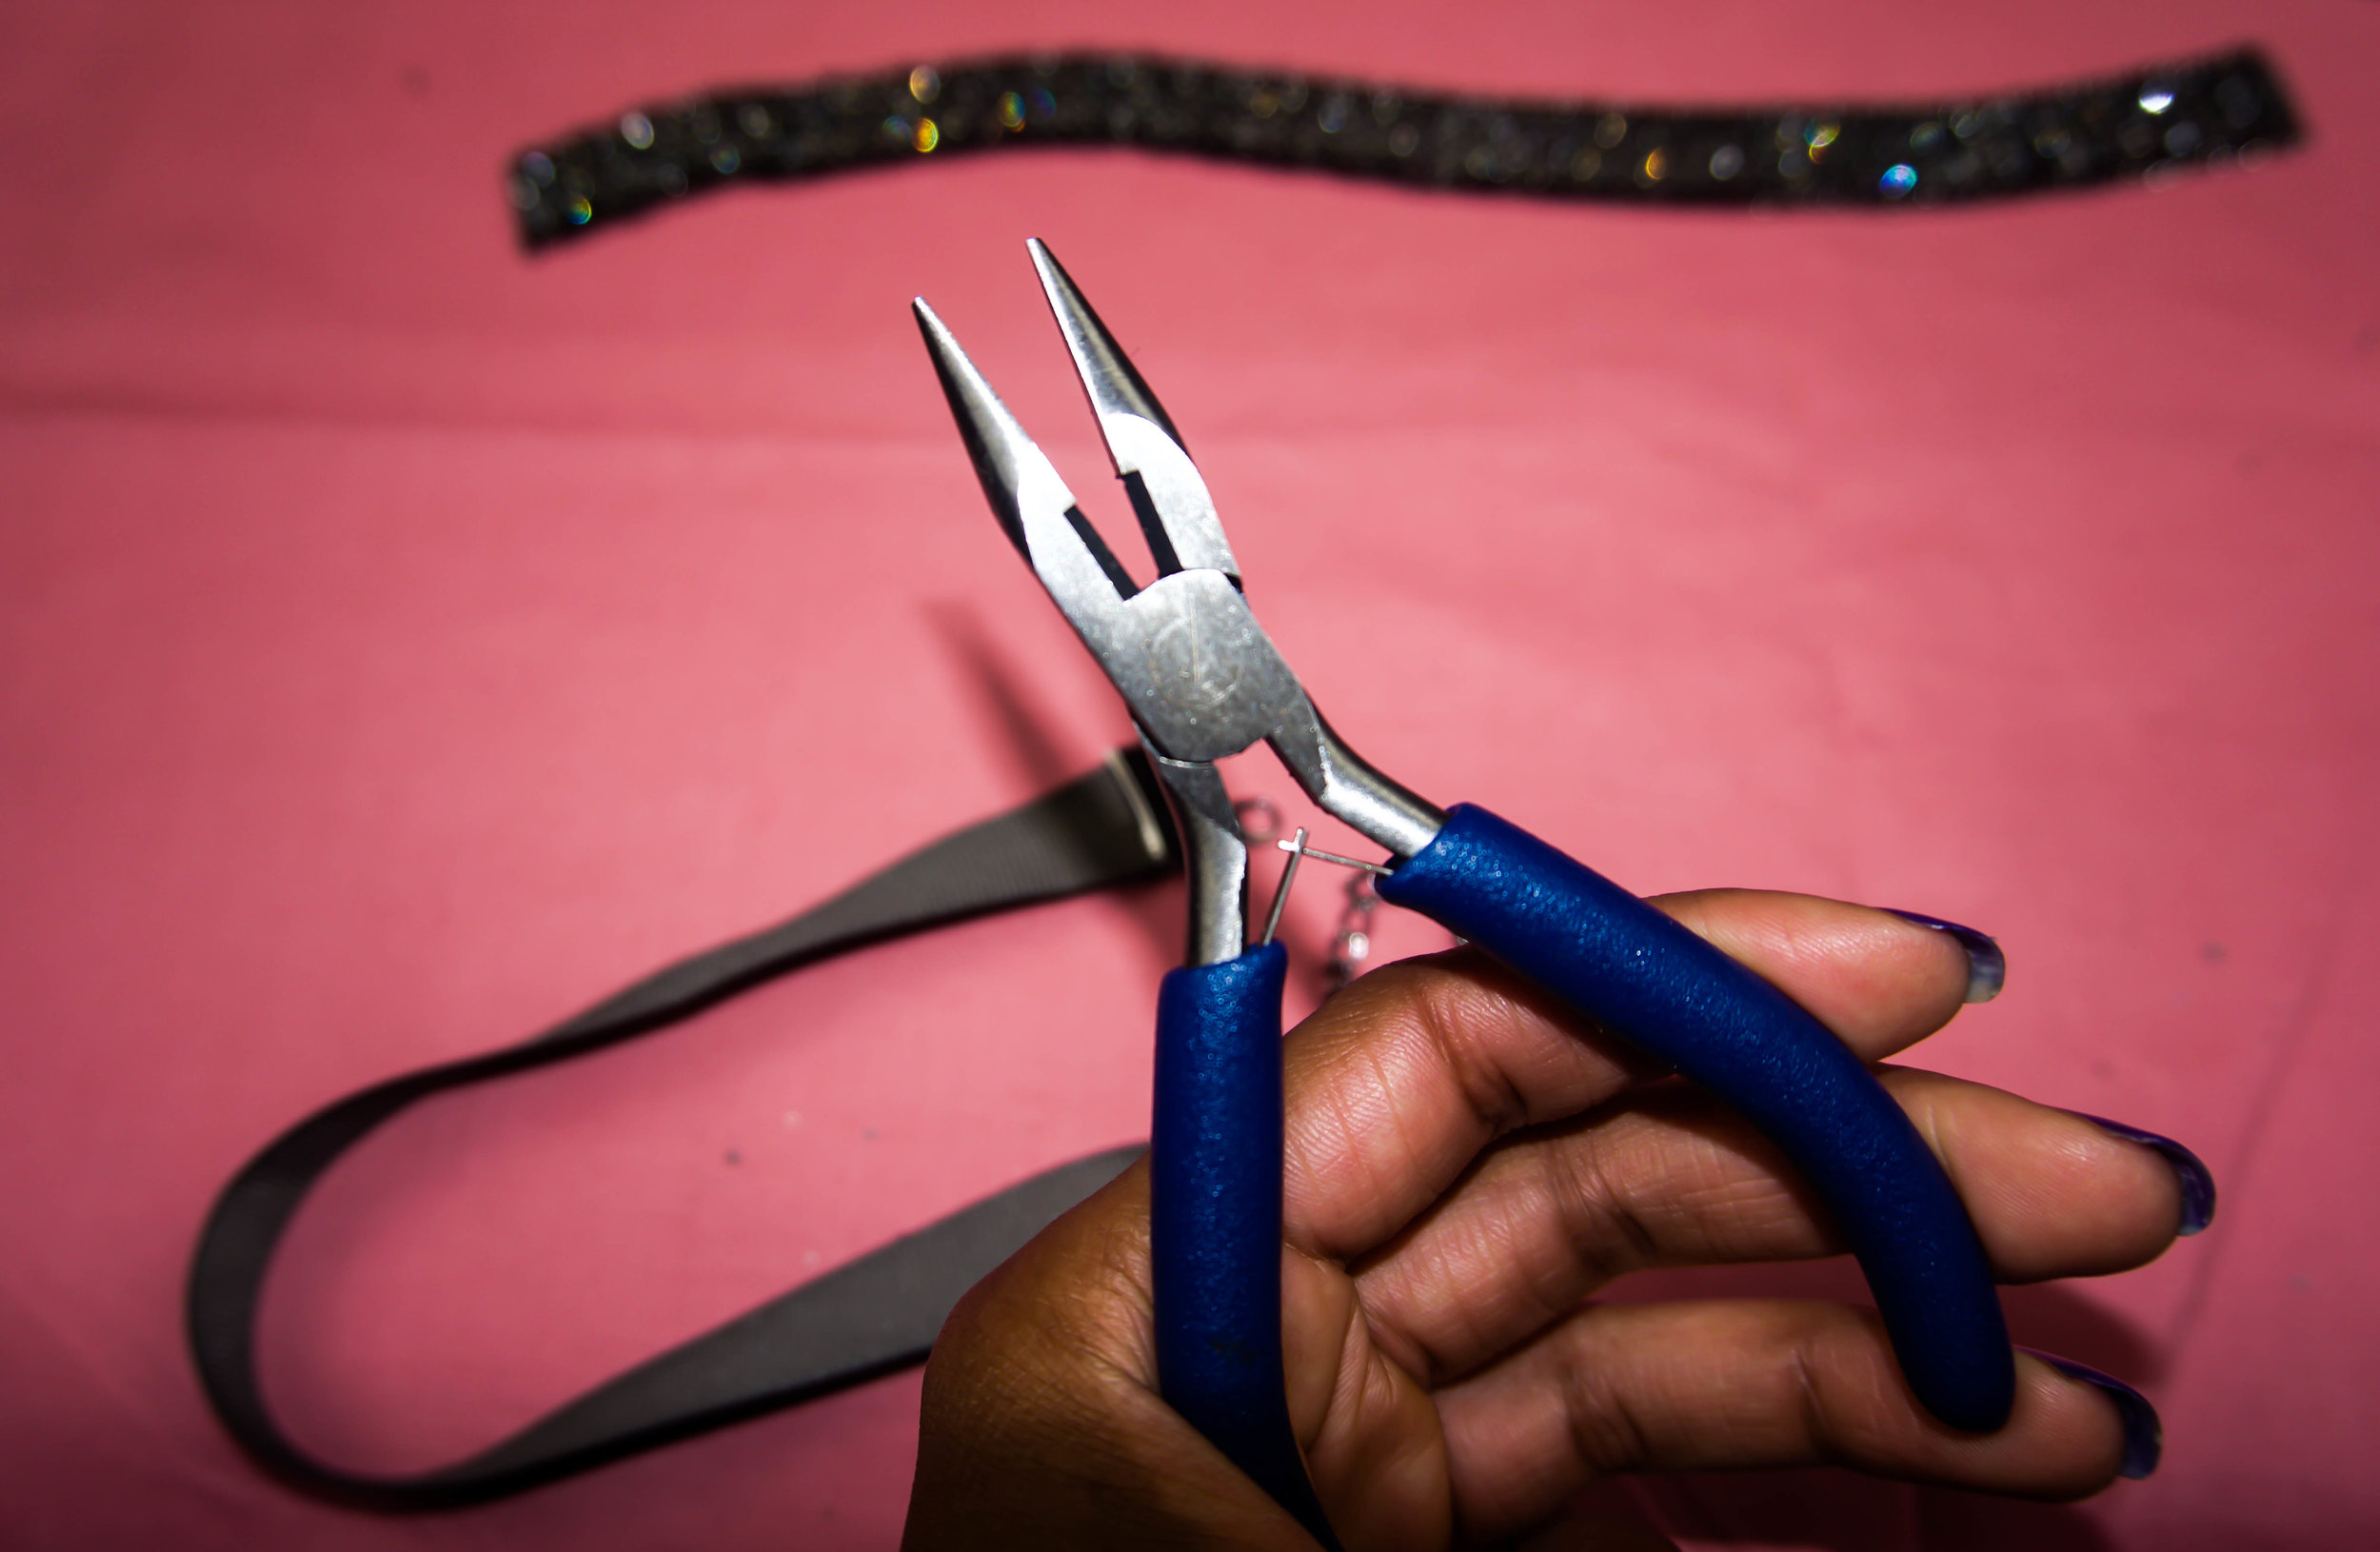 These are Flat Nose (w/o teeth) Pliers, used to clamp down your crimp end closure.